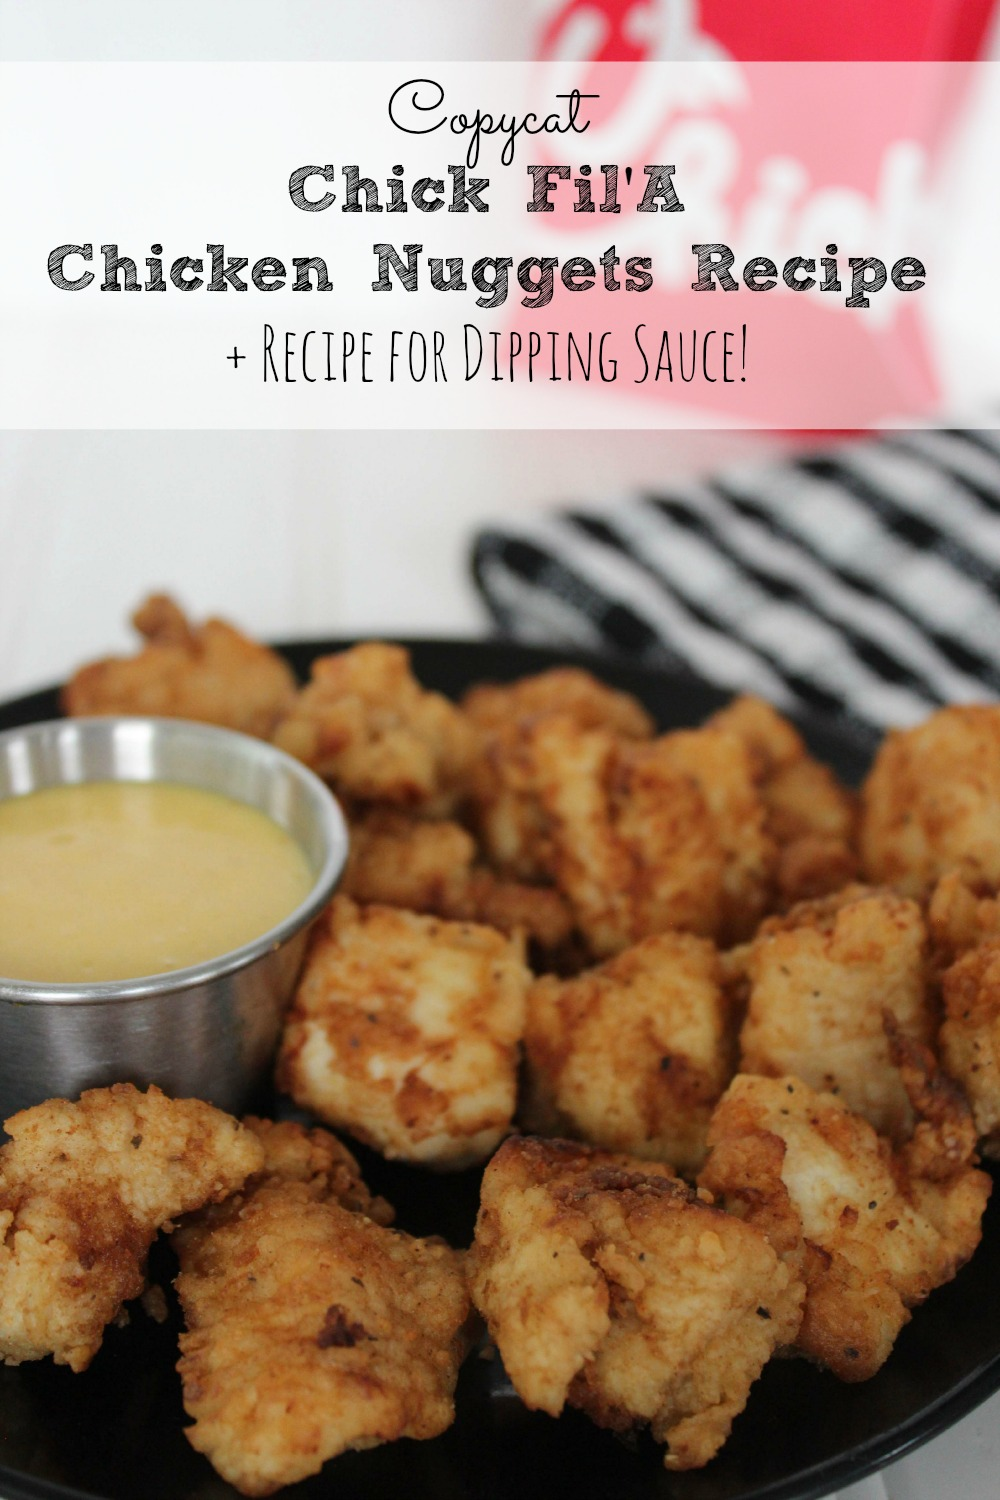 Copycat Chick Fil A Chicken Nuggets and Dipping Sauce Recipe